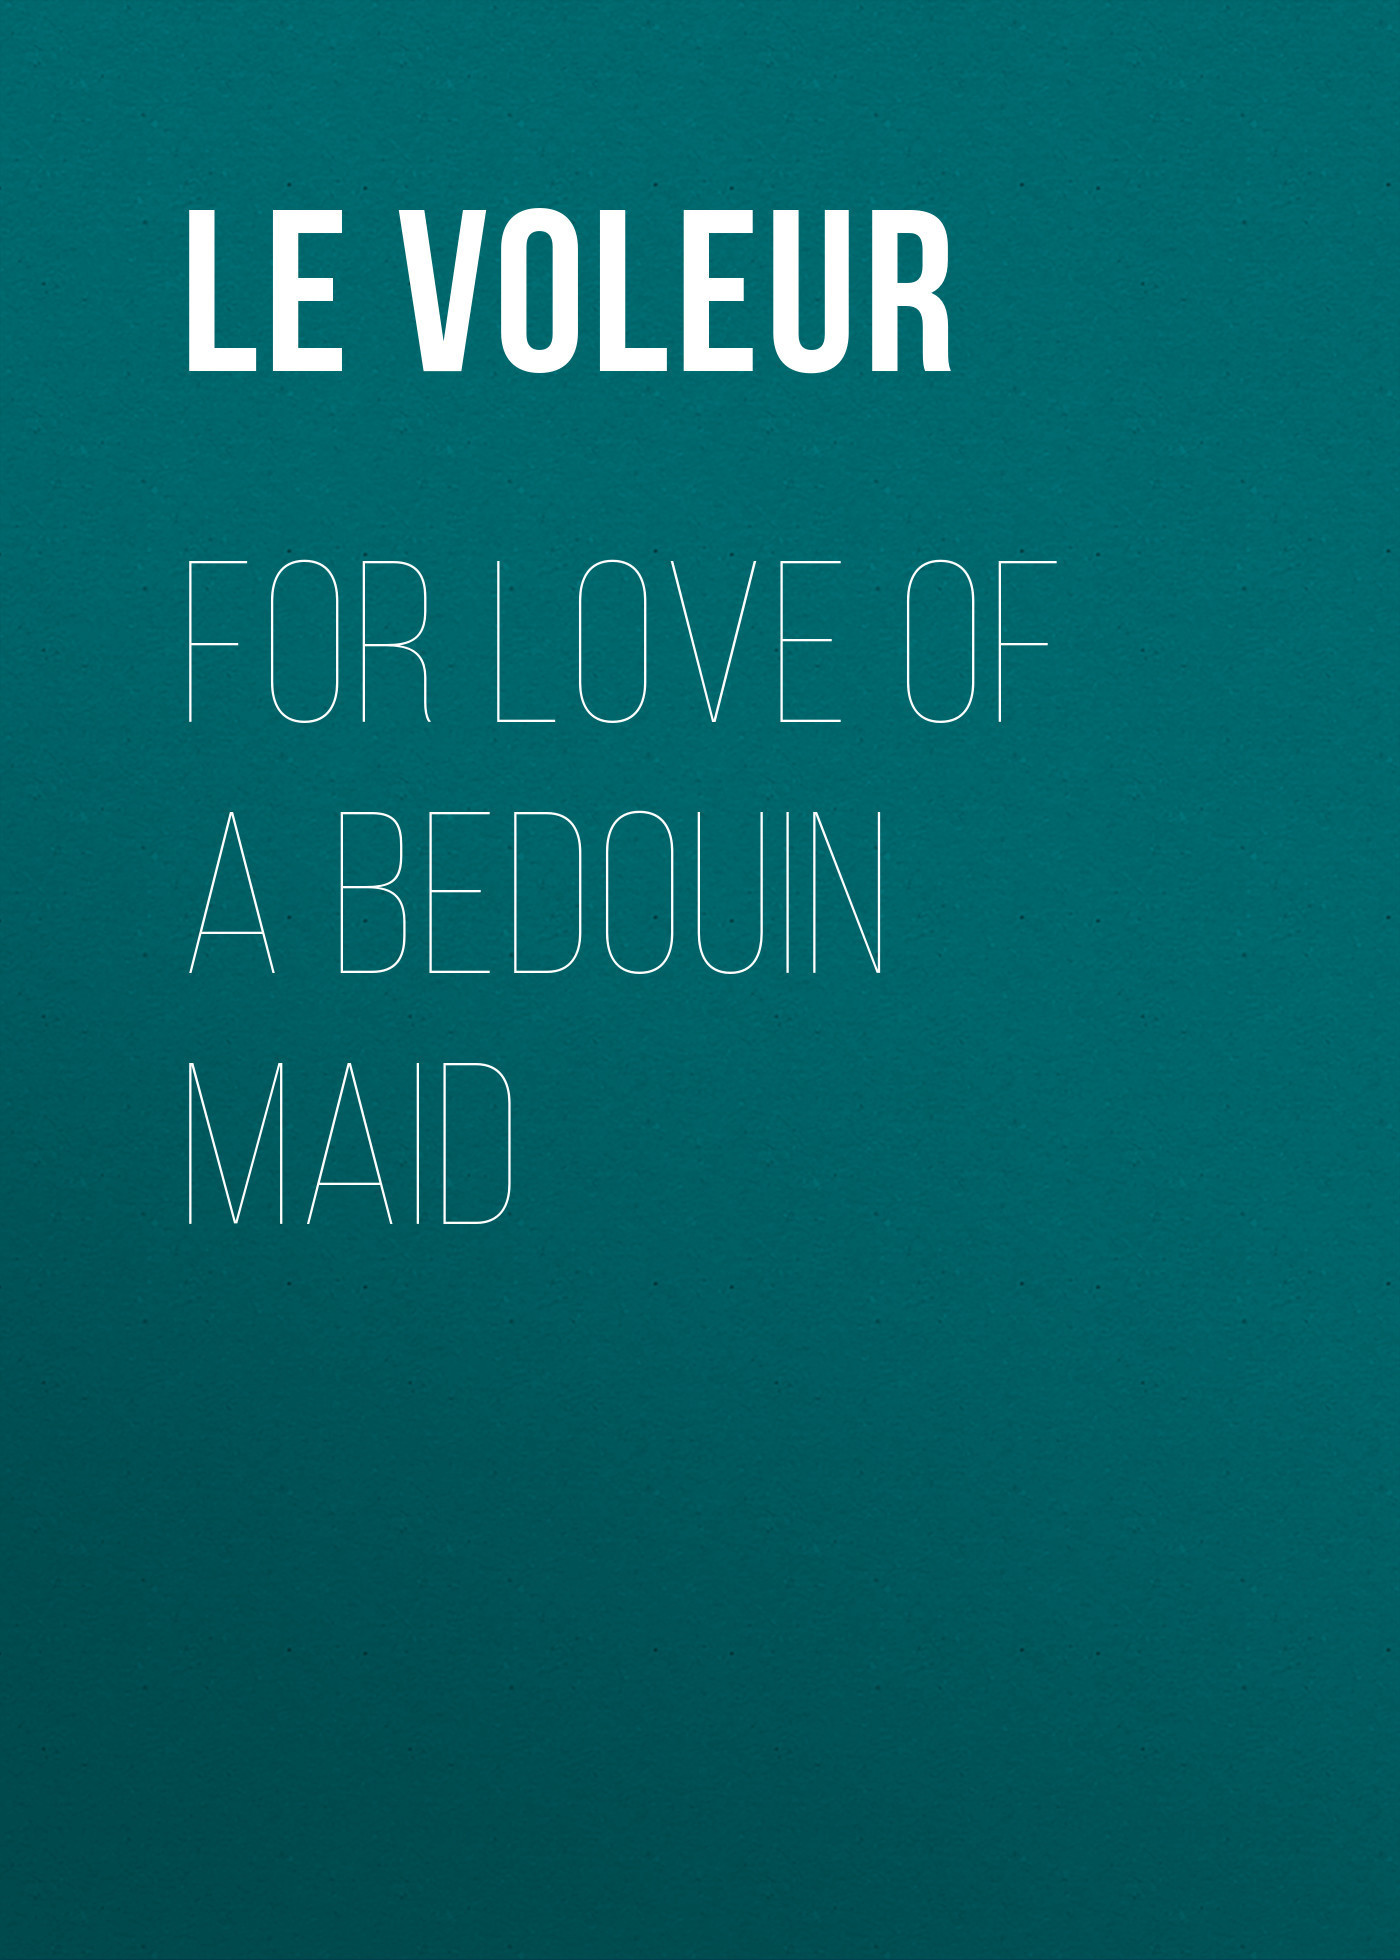 Le Voleur For Love of a Bedouin Maid moominmamma s maid